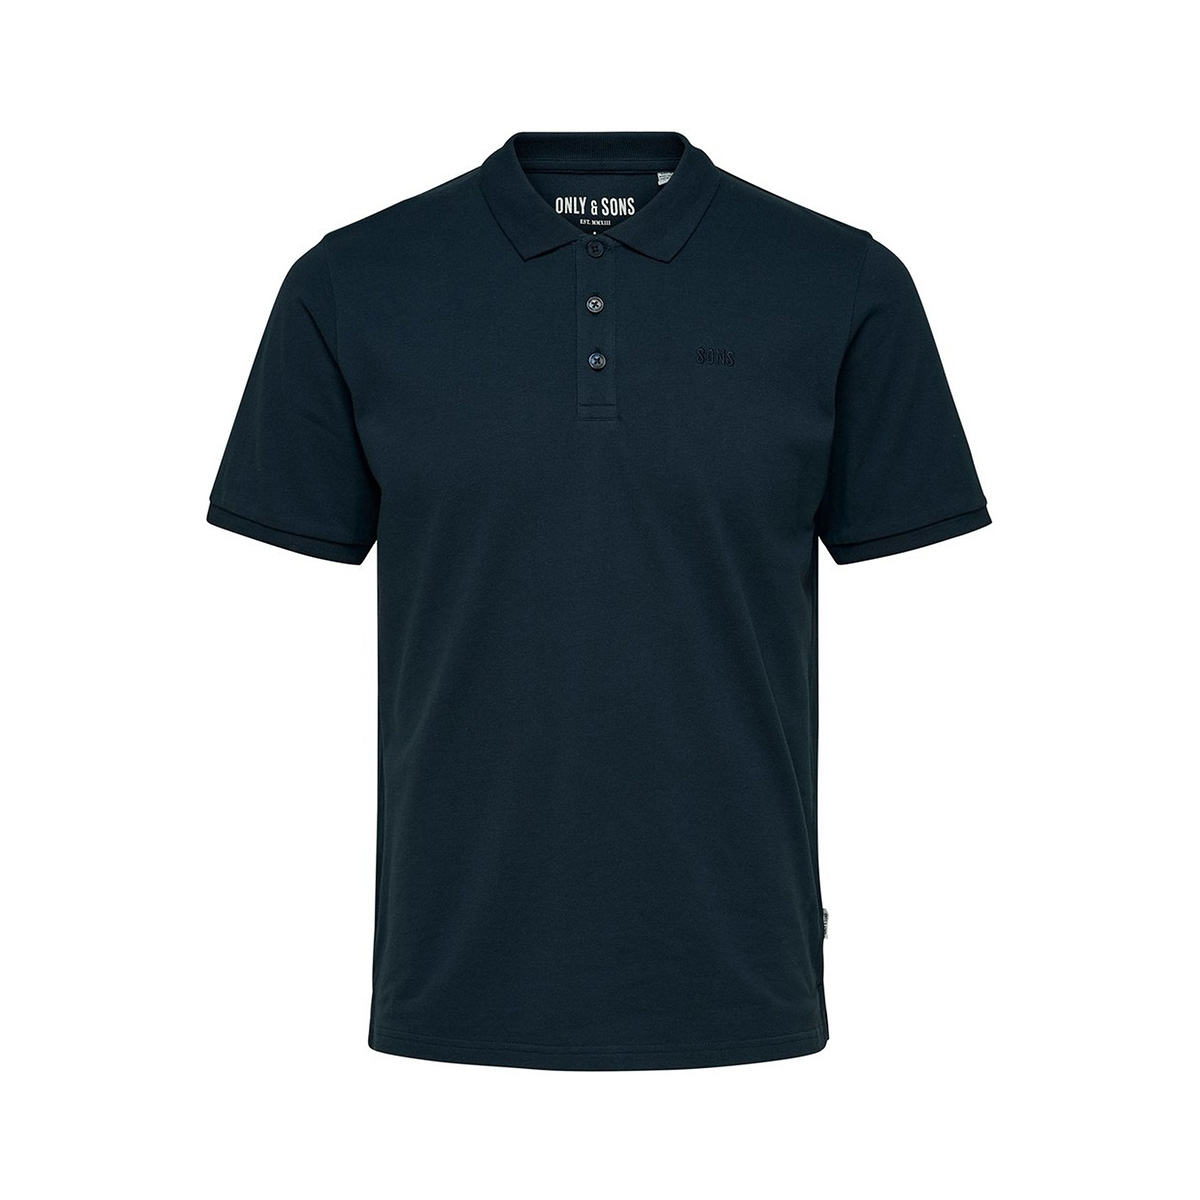 onsscott pique polo noos 22013117 only & sons polo dress blues